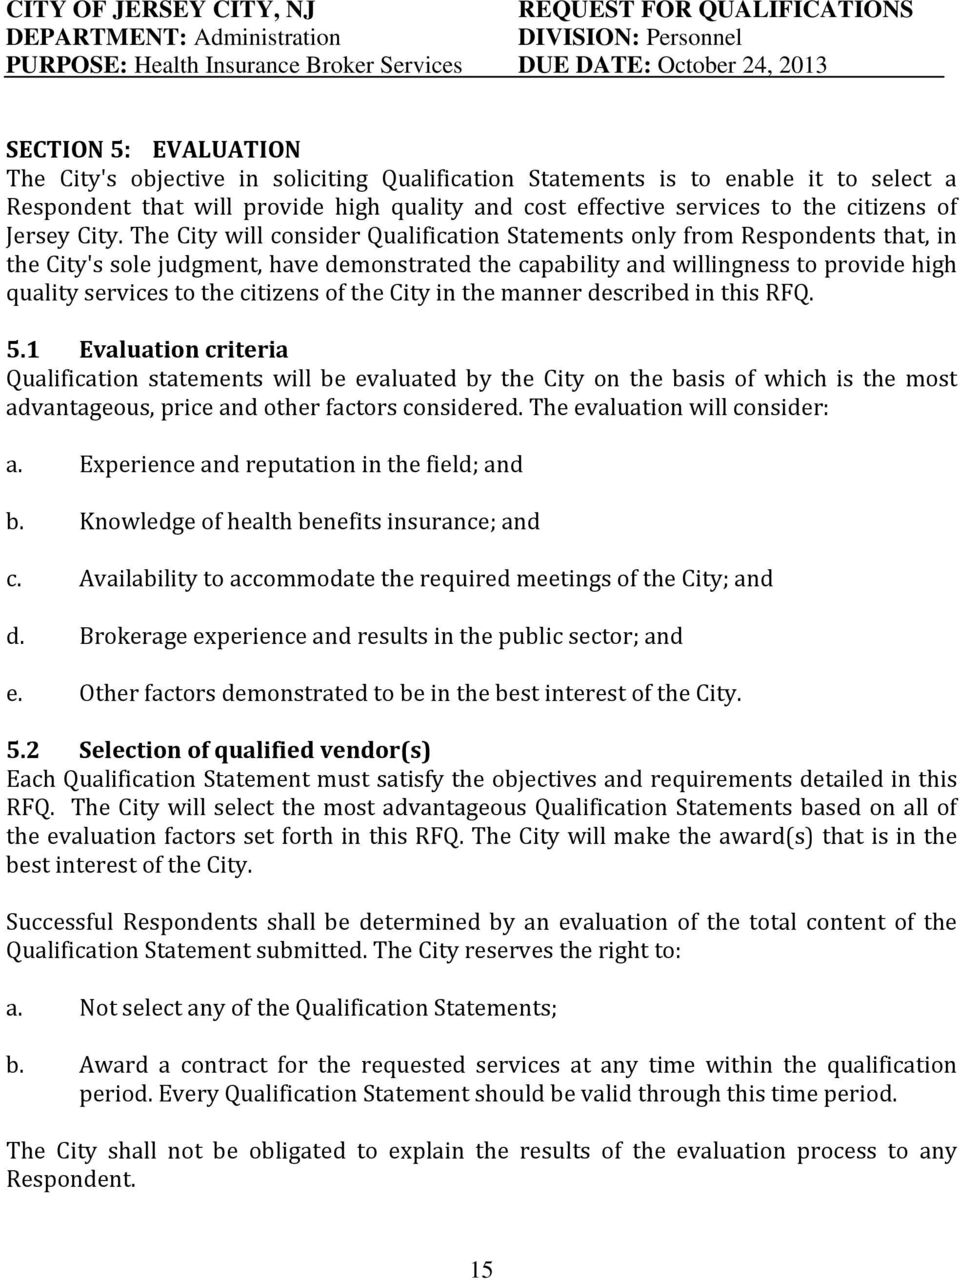 The City will consider Qualification Statements only from Respondents that, in the City's sole judgment, have demonstrated the capability and willingness to provide high quality services to the